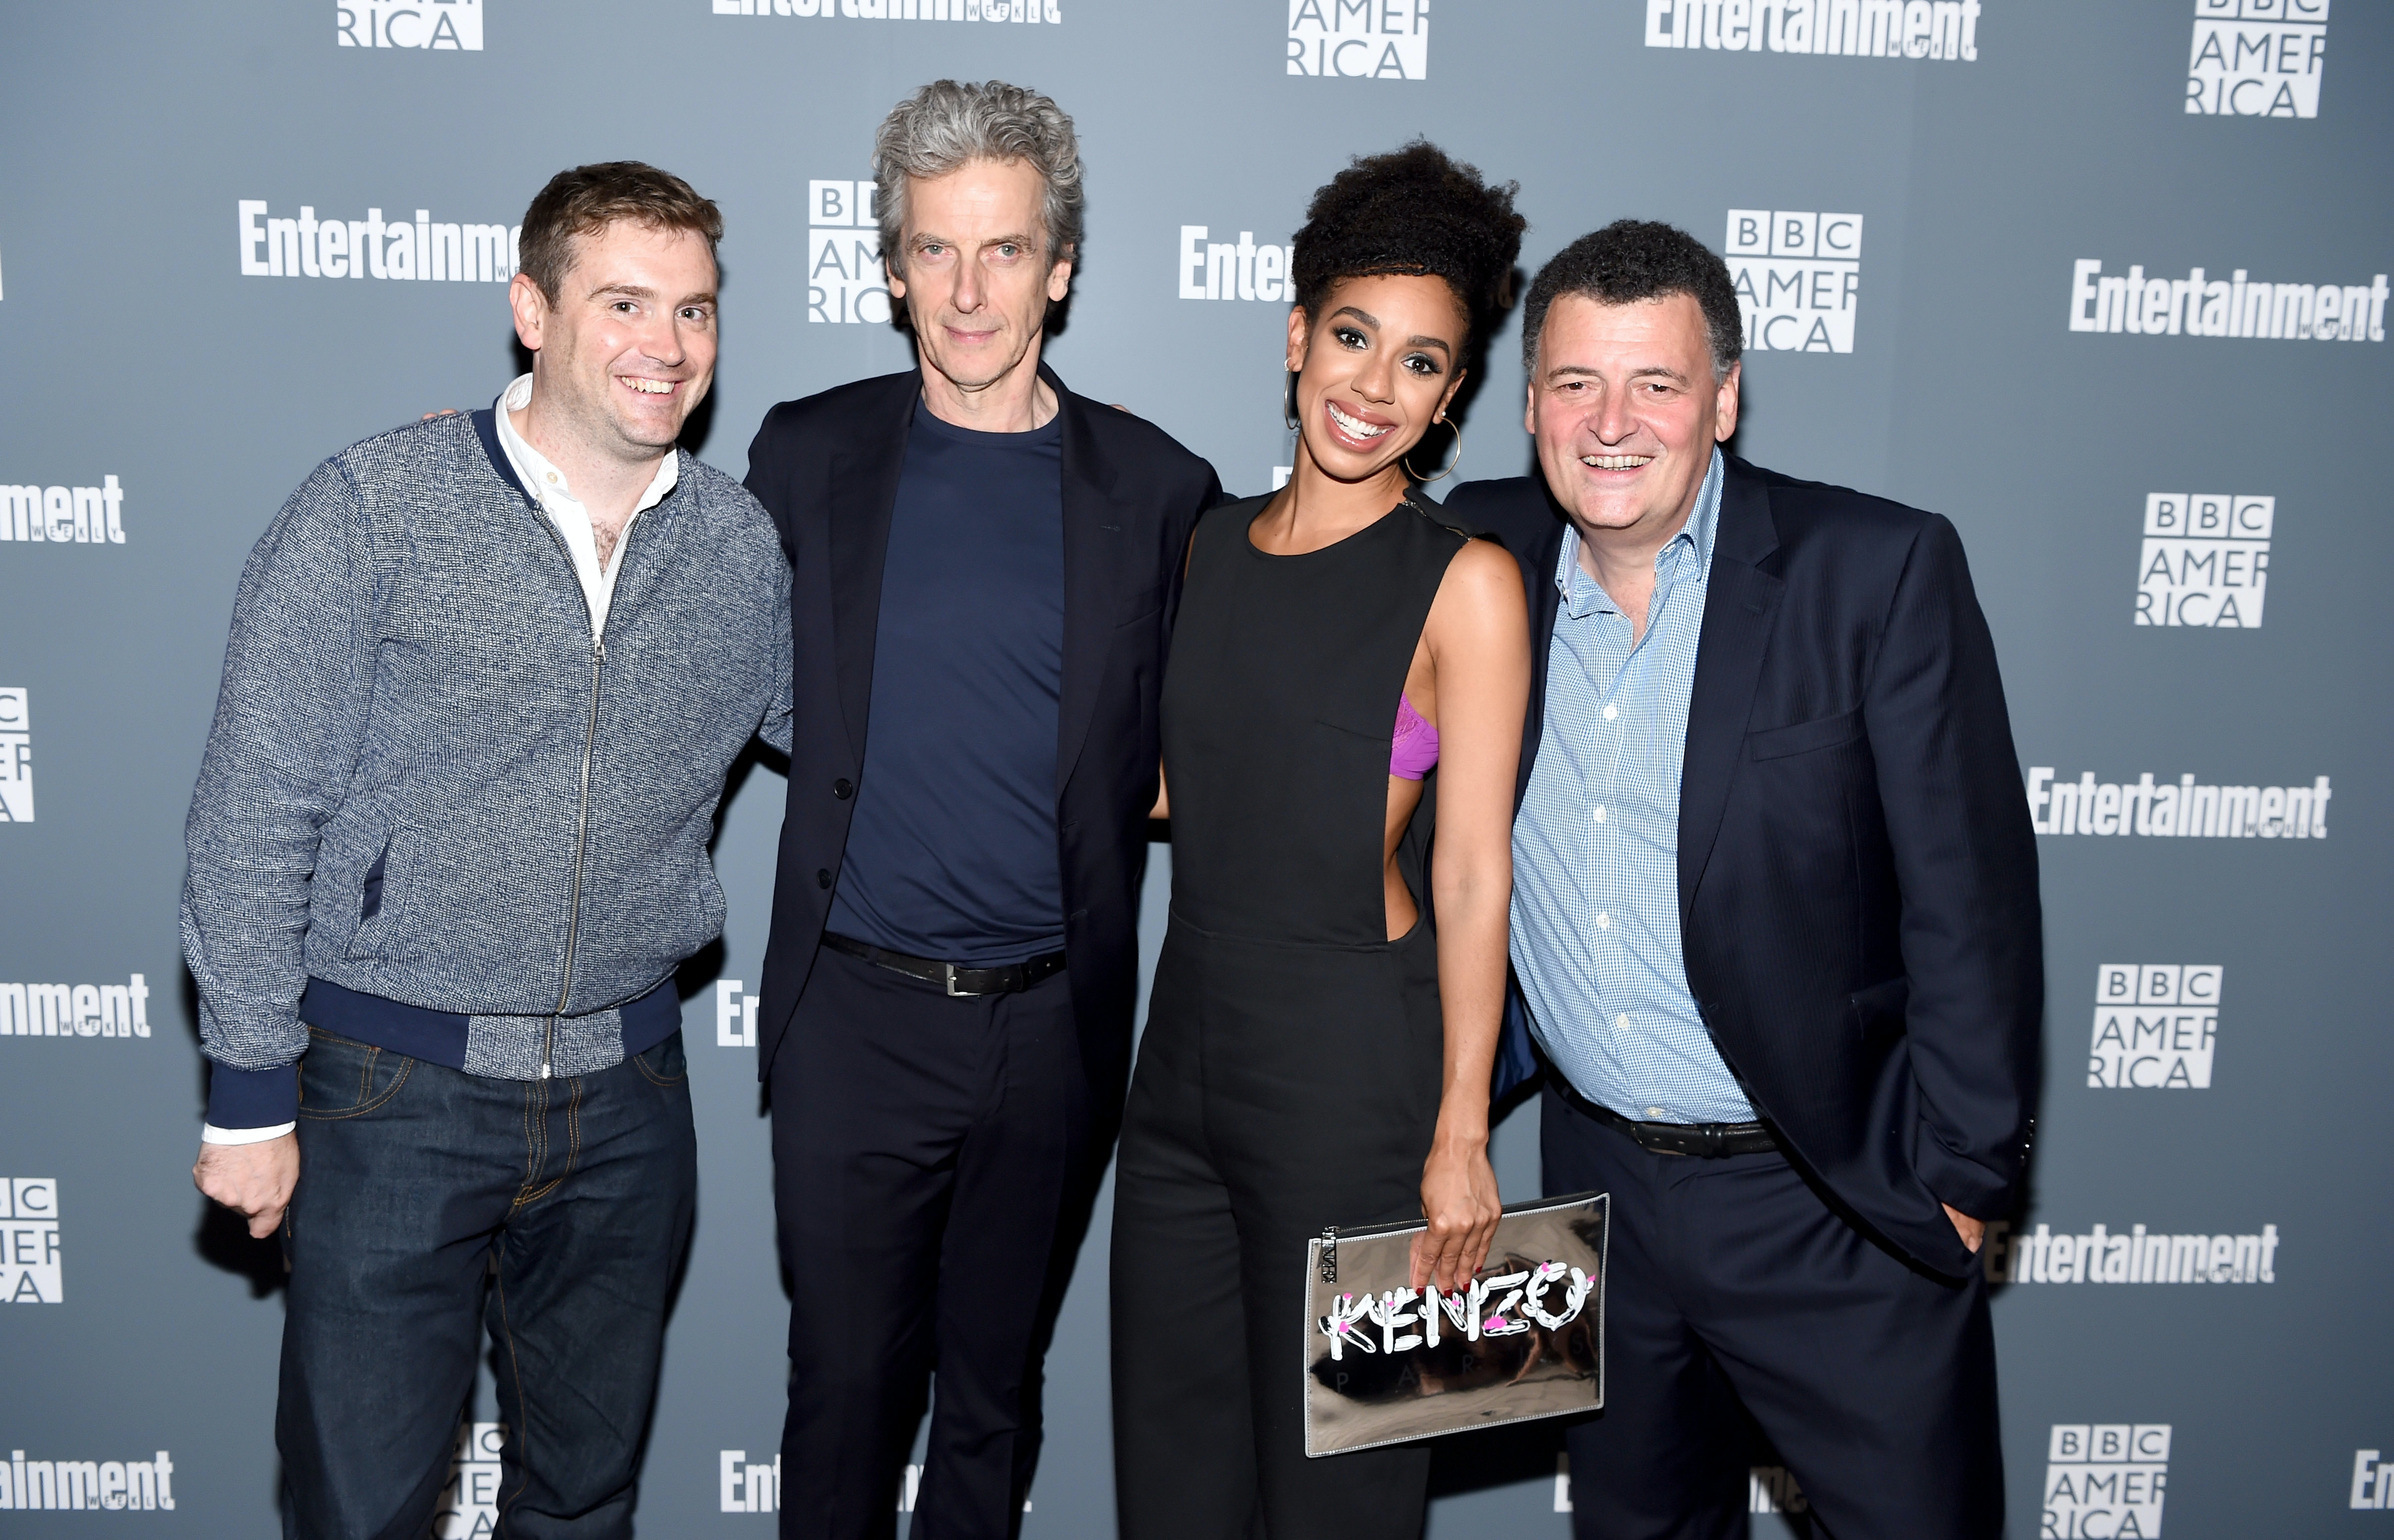 NEW YORK, NY - OCTOBER 06:  Brian Minchin, Peter Capaldi, Pearl Mackie, and Steven Moffat attend  EW Hosts An Evening With BBC America on October 6, 2016 in New York City.  (Photo by Dave Kotinsky/Getty Images for Entertainment Weekly)